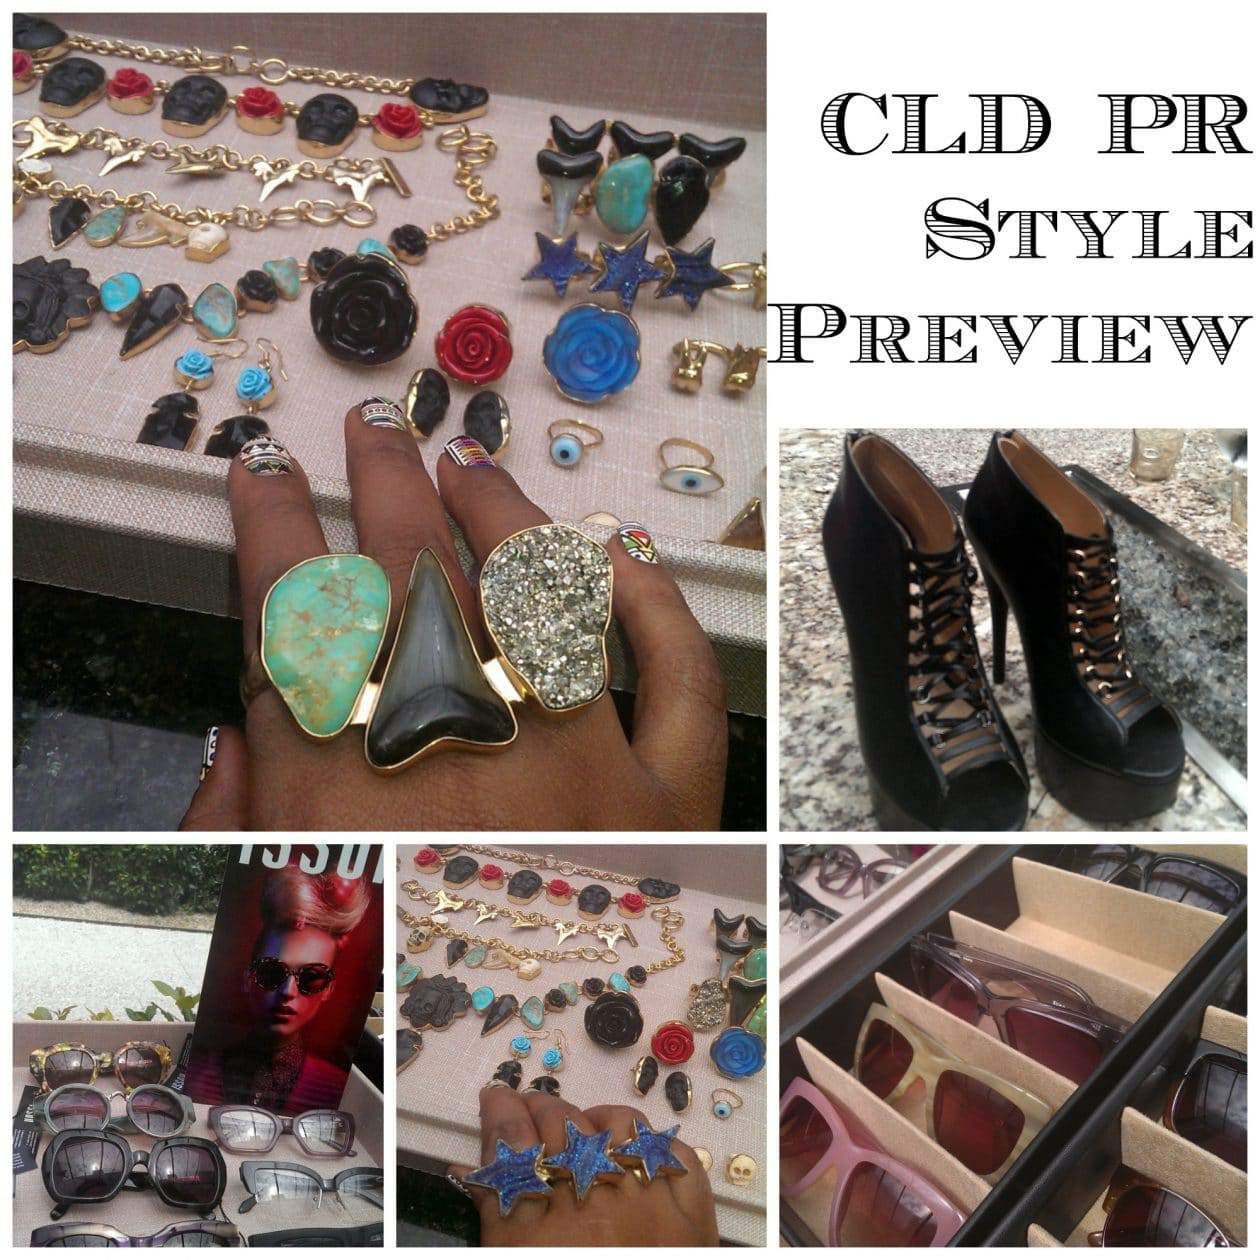 Out and About: Labor Day Tease with CLD PR Style